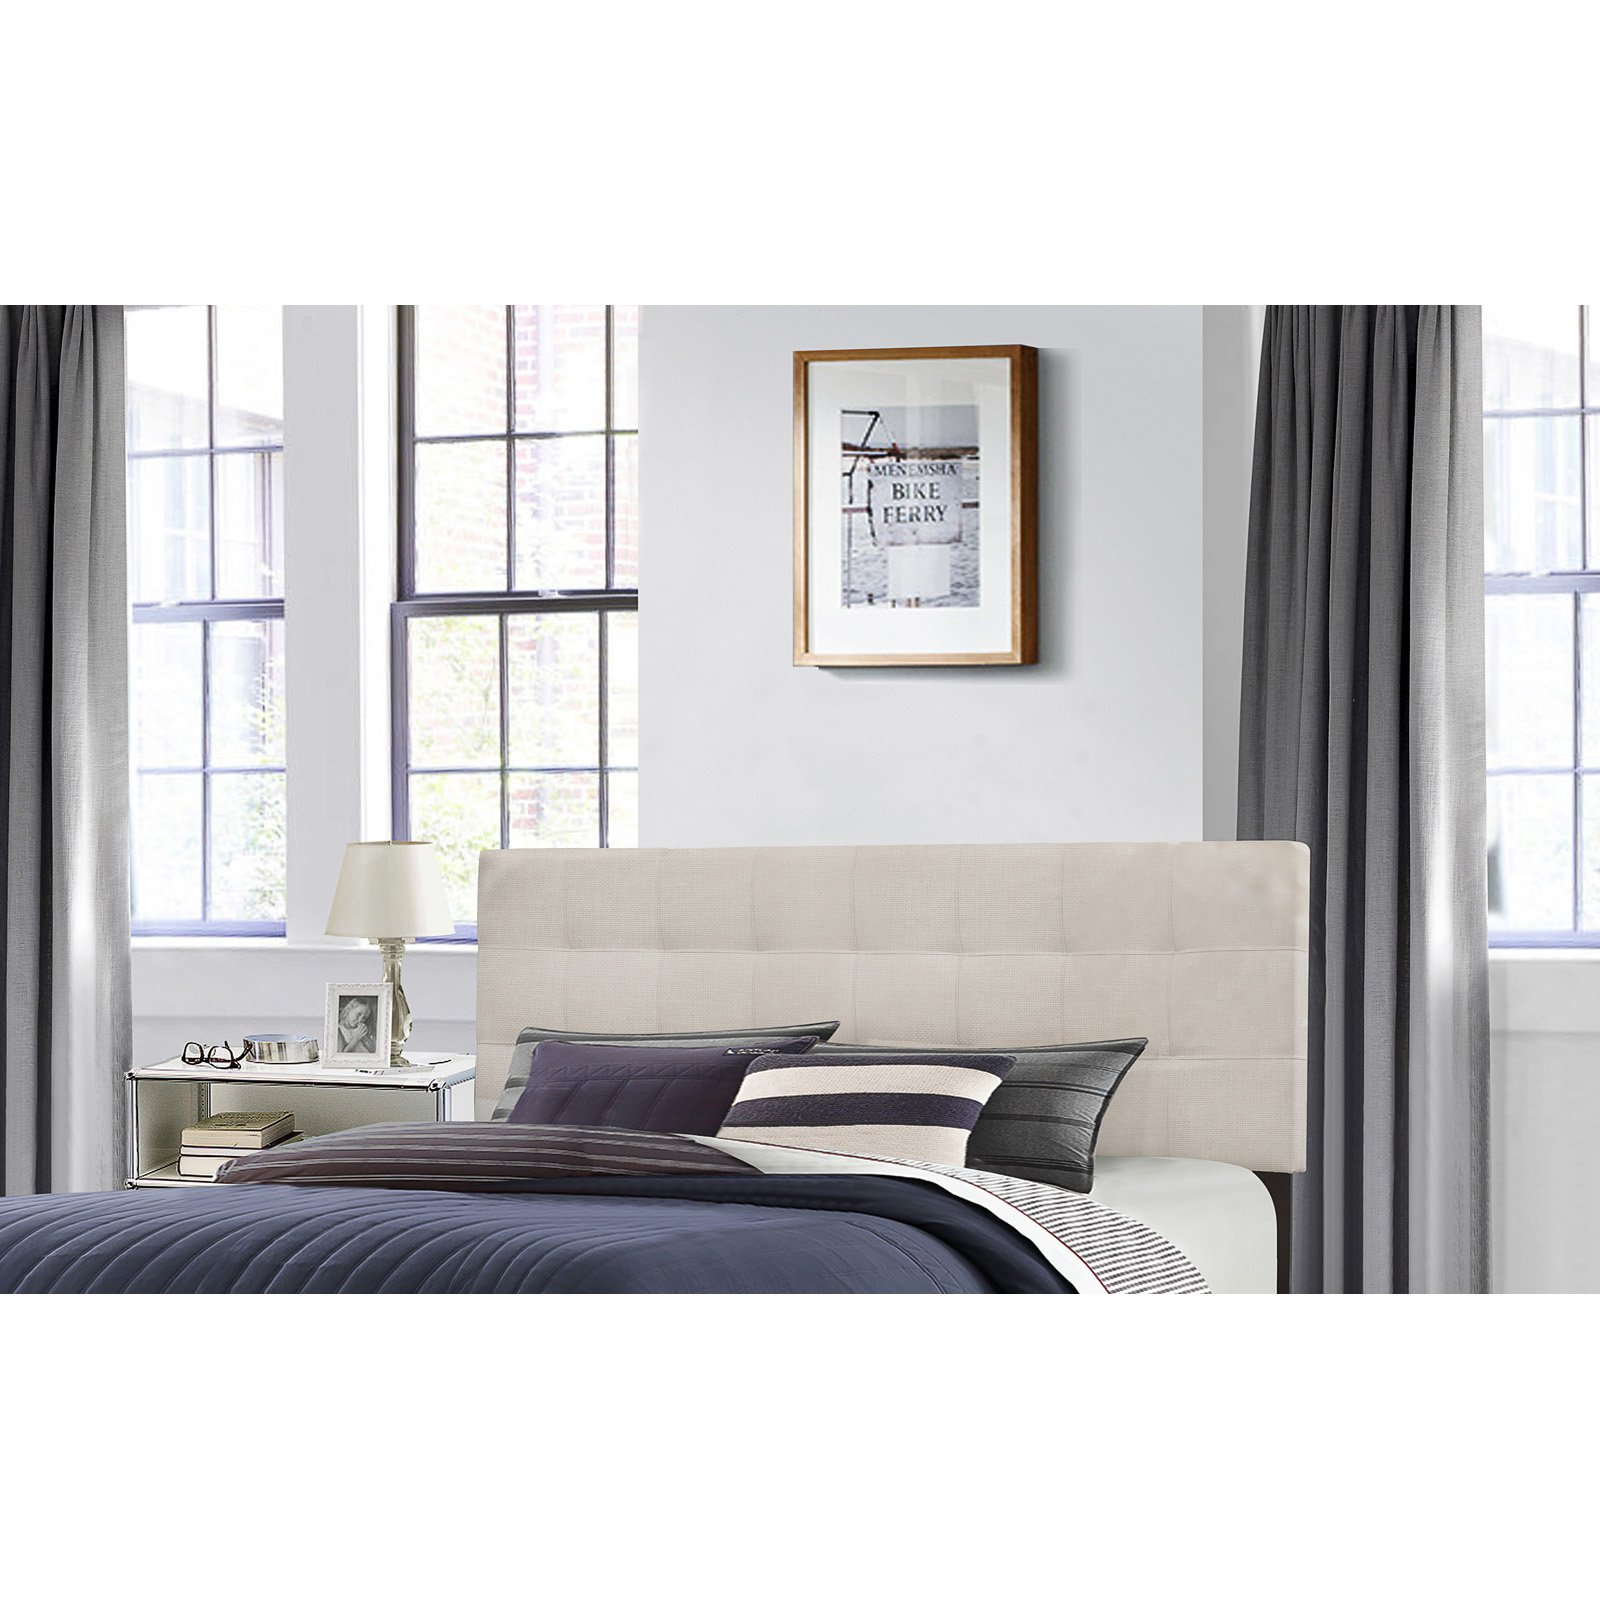 Hillsdale Delaney Upholstered Headboard by Hillsdale